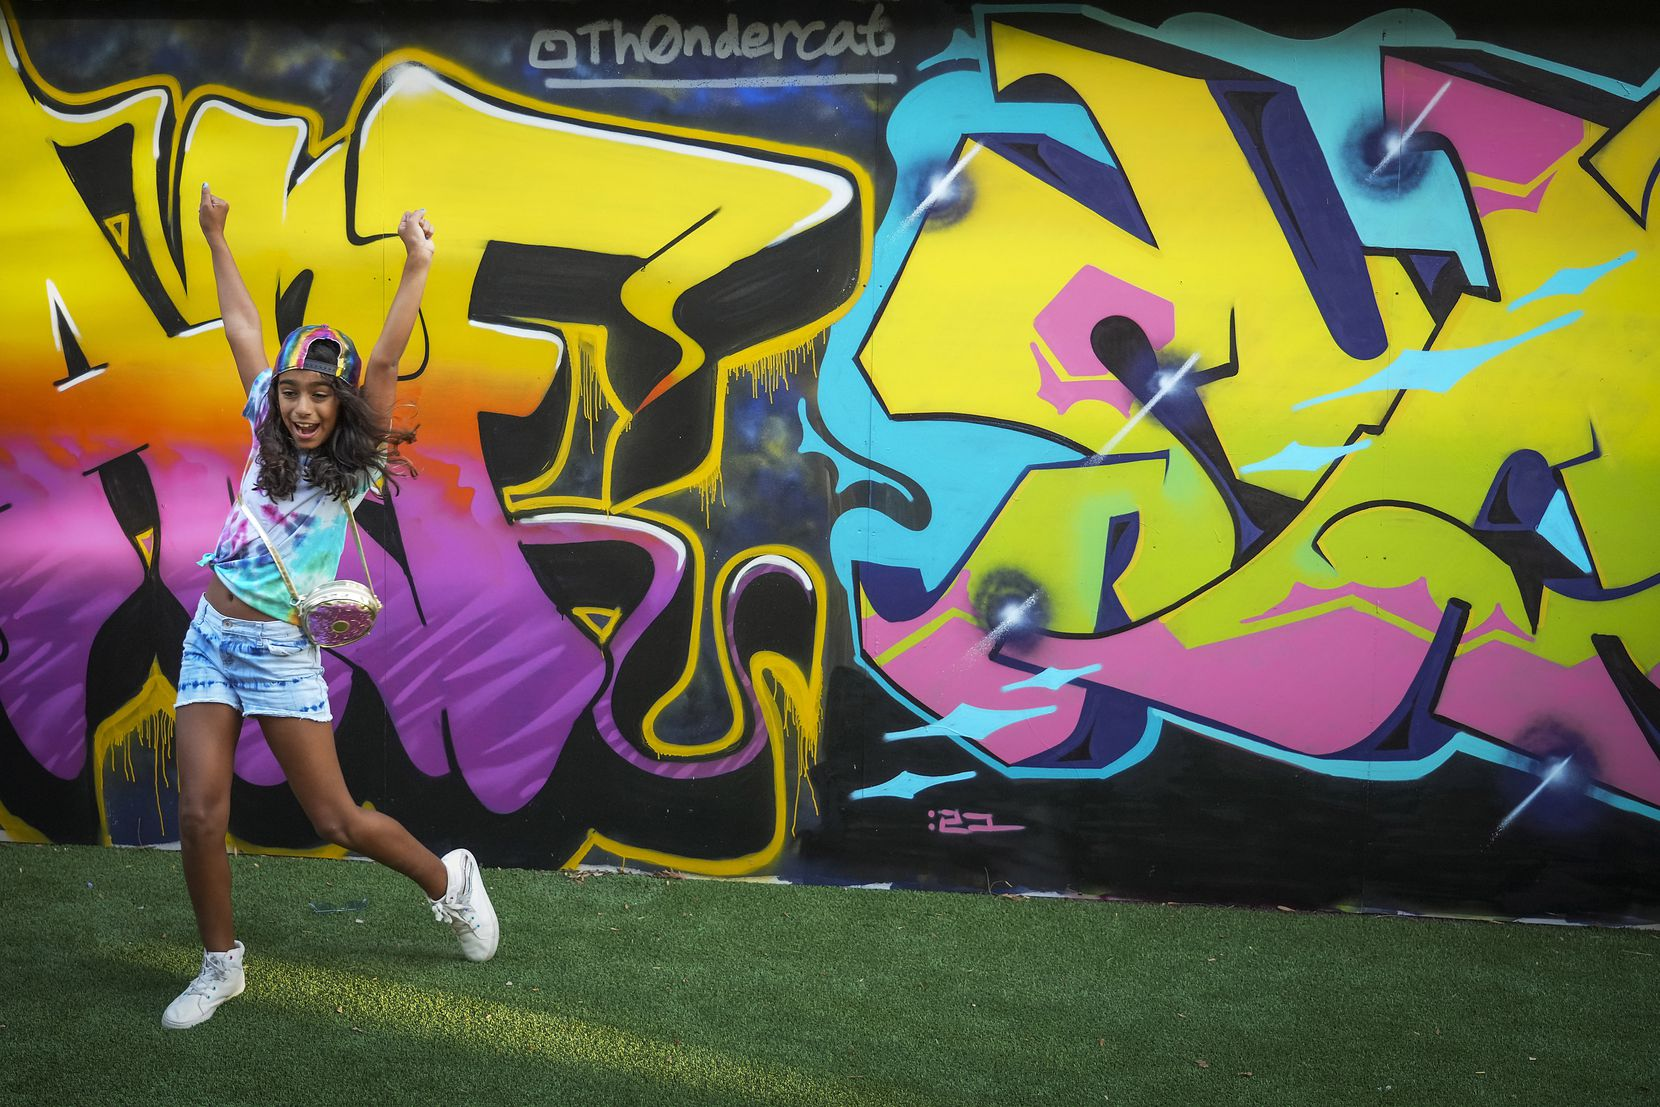 Farah Herrera, 10, celebrates while playing lawn games at ArtPark in Trinity Groves.